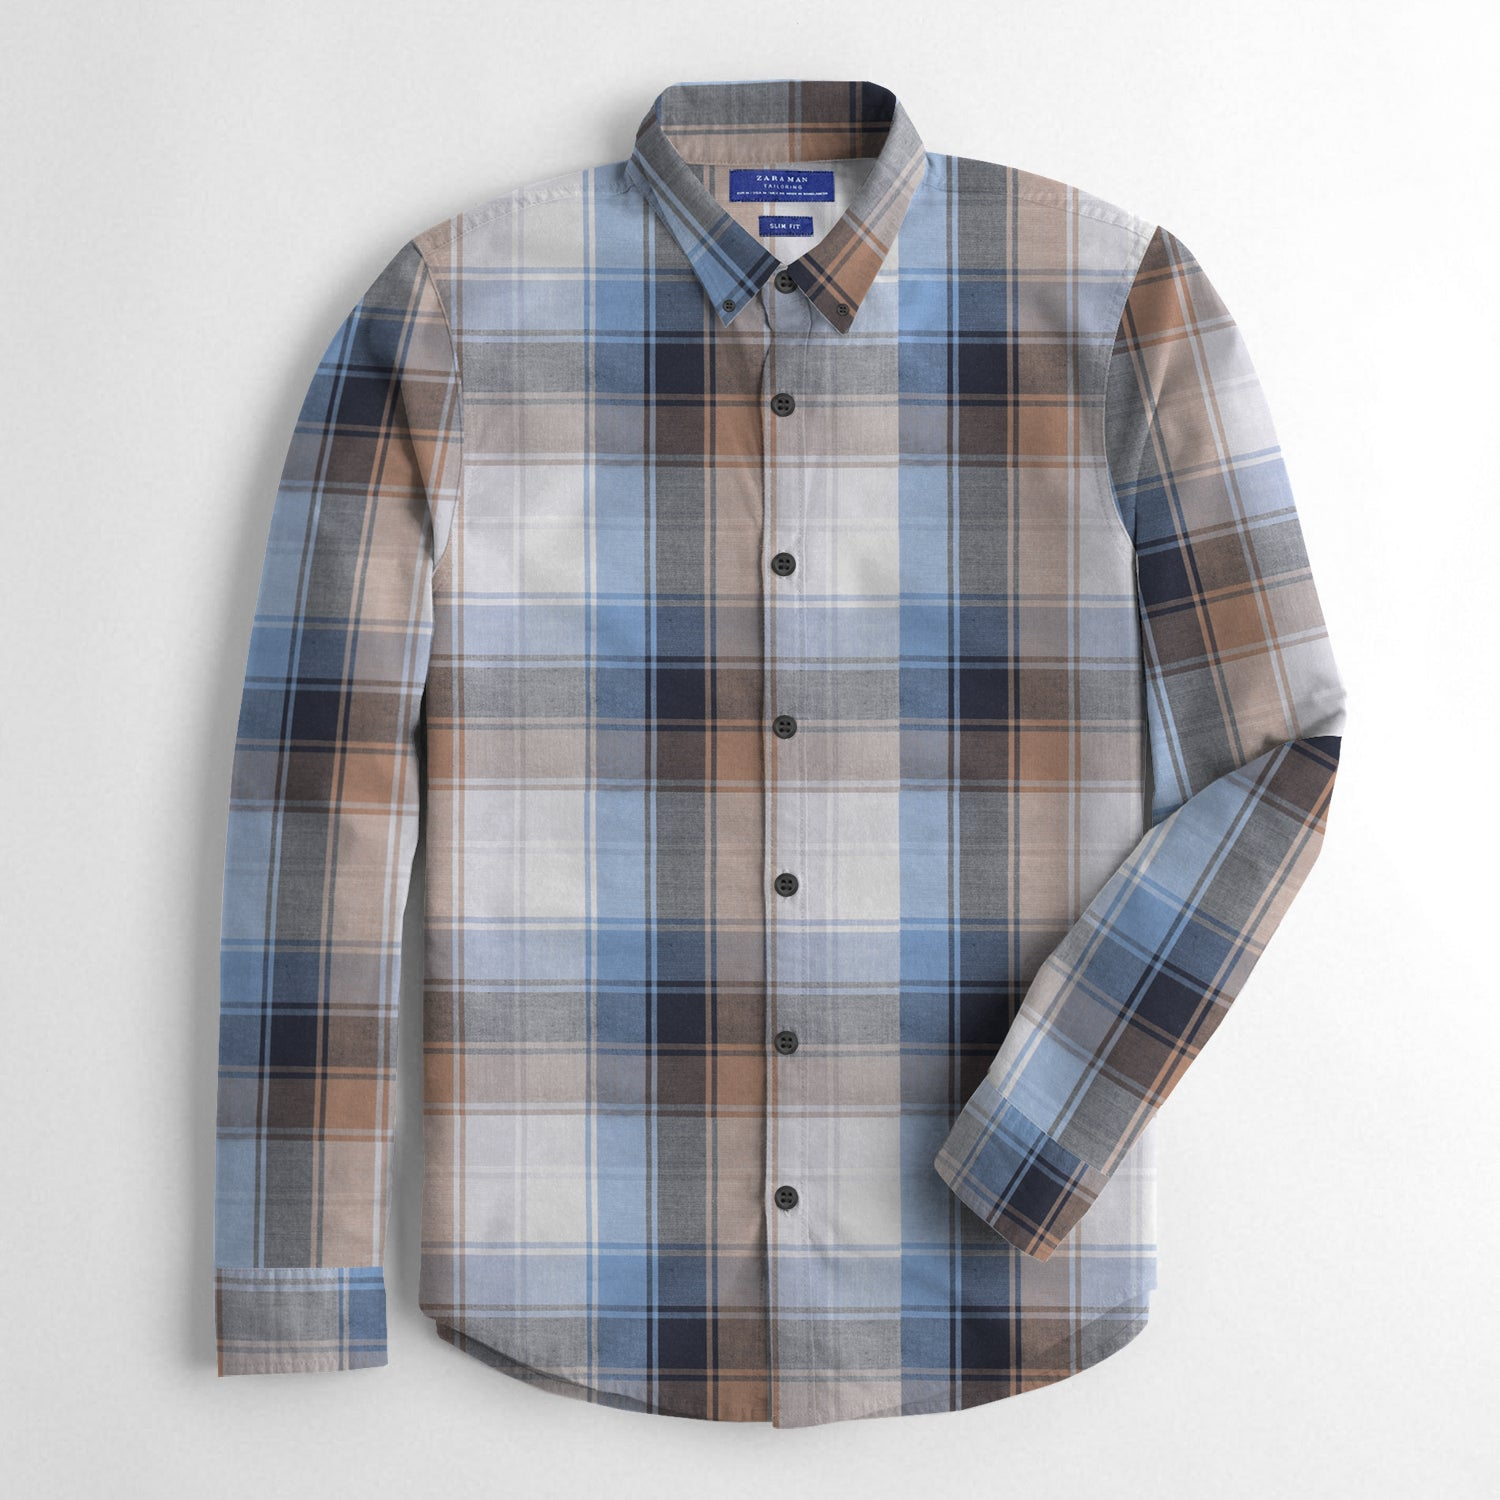 ZM Premium Slim Fit Casual Shirt For Men-Allover Check-BE12507